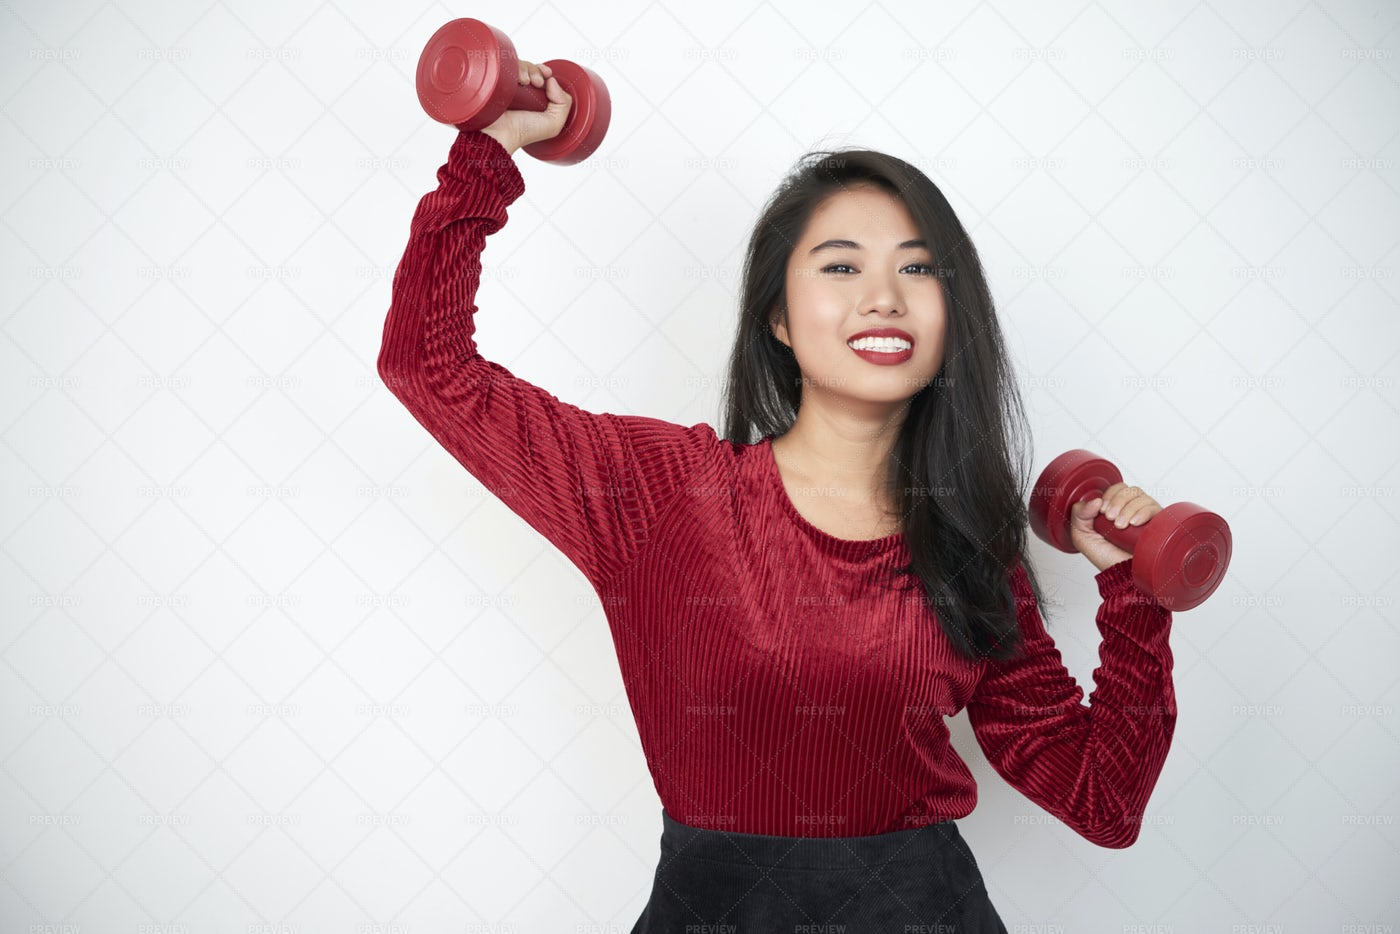 Woman Exercising With Dumbbells: Stock Photos